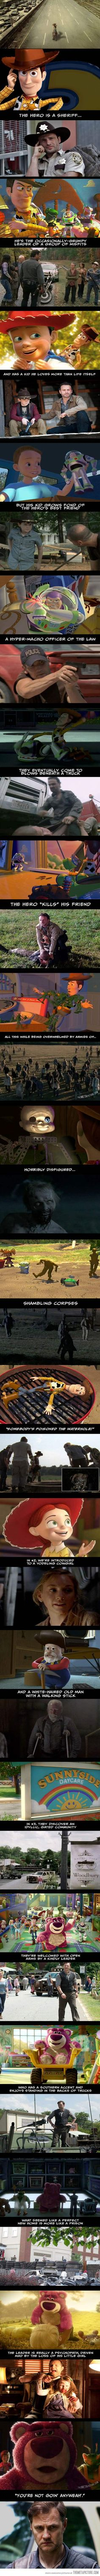 The Walking Dead vs Toy Story -- This is fantastic!